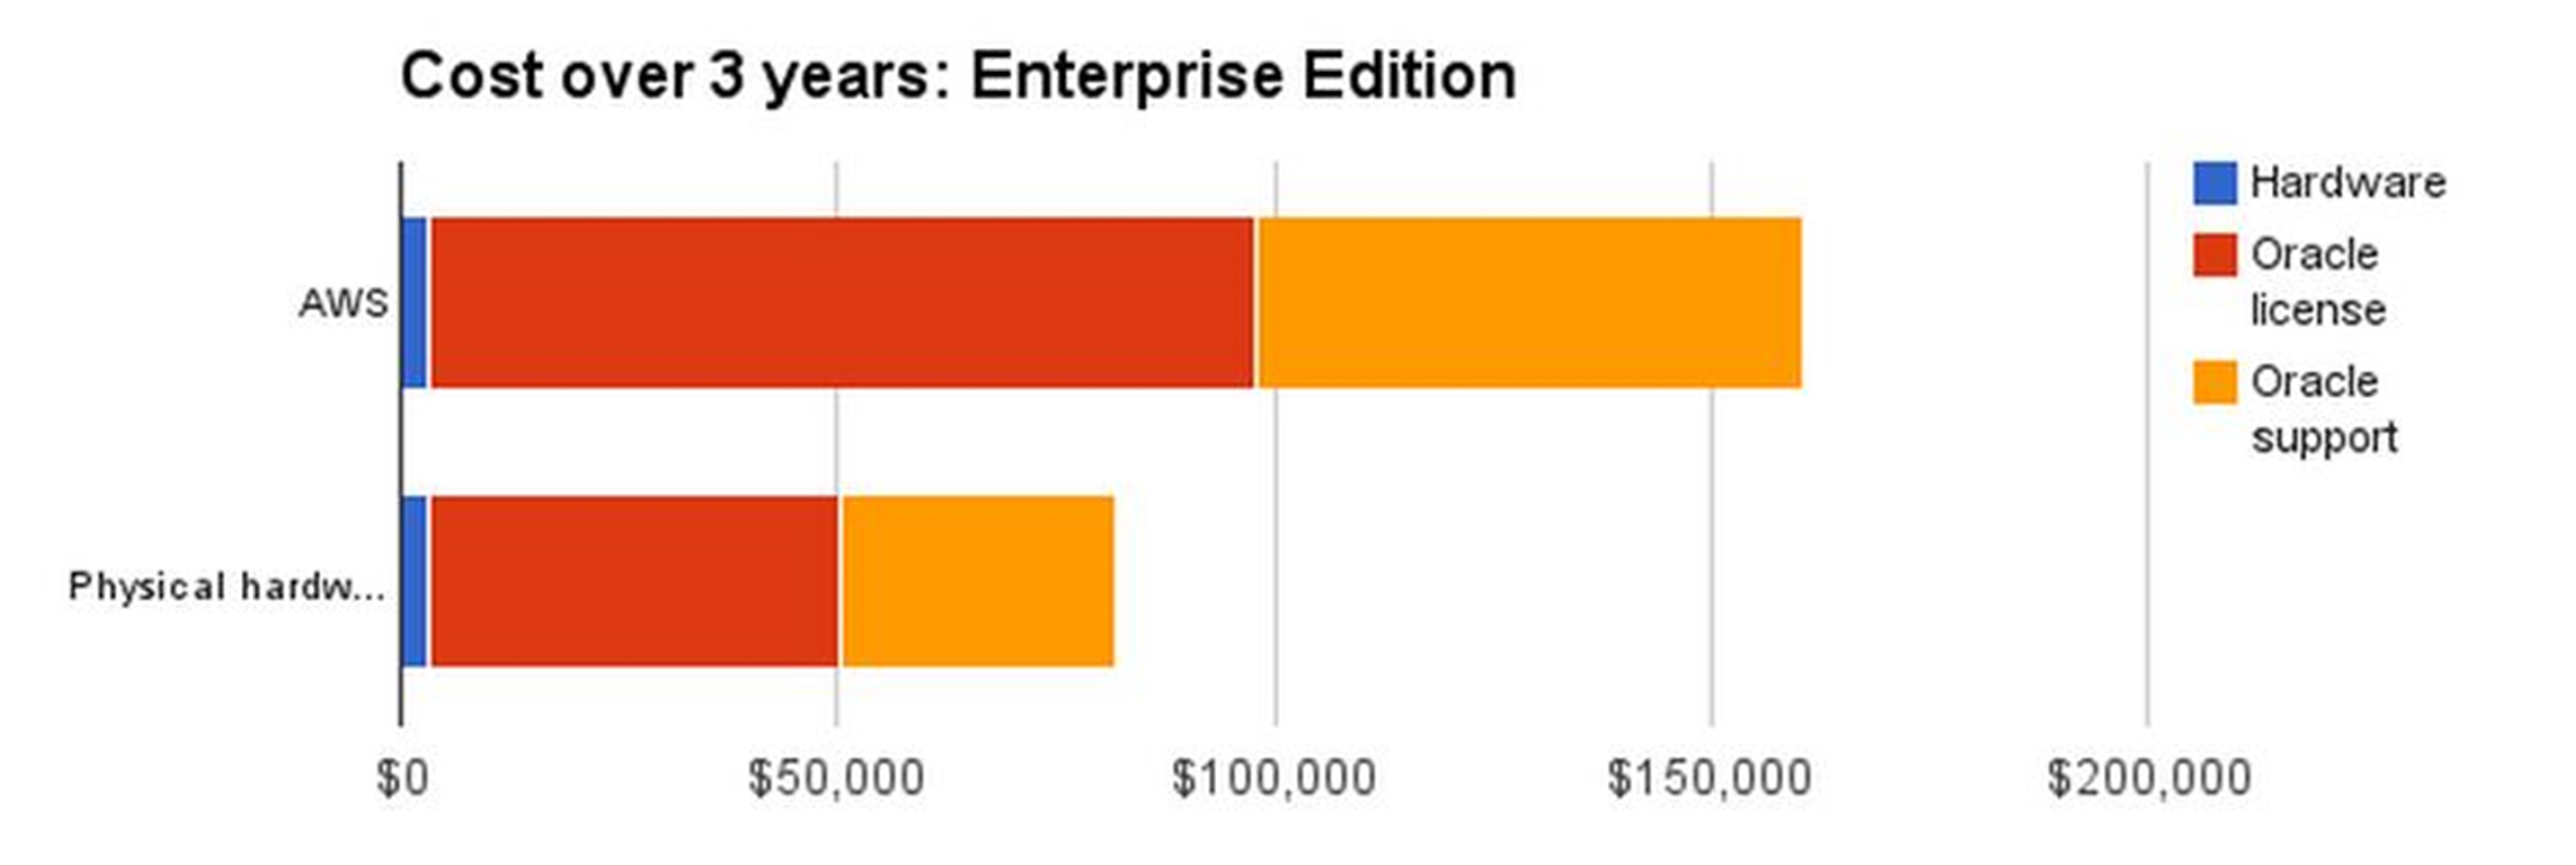 Oracle Enterprise Edition 3 year costs